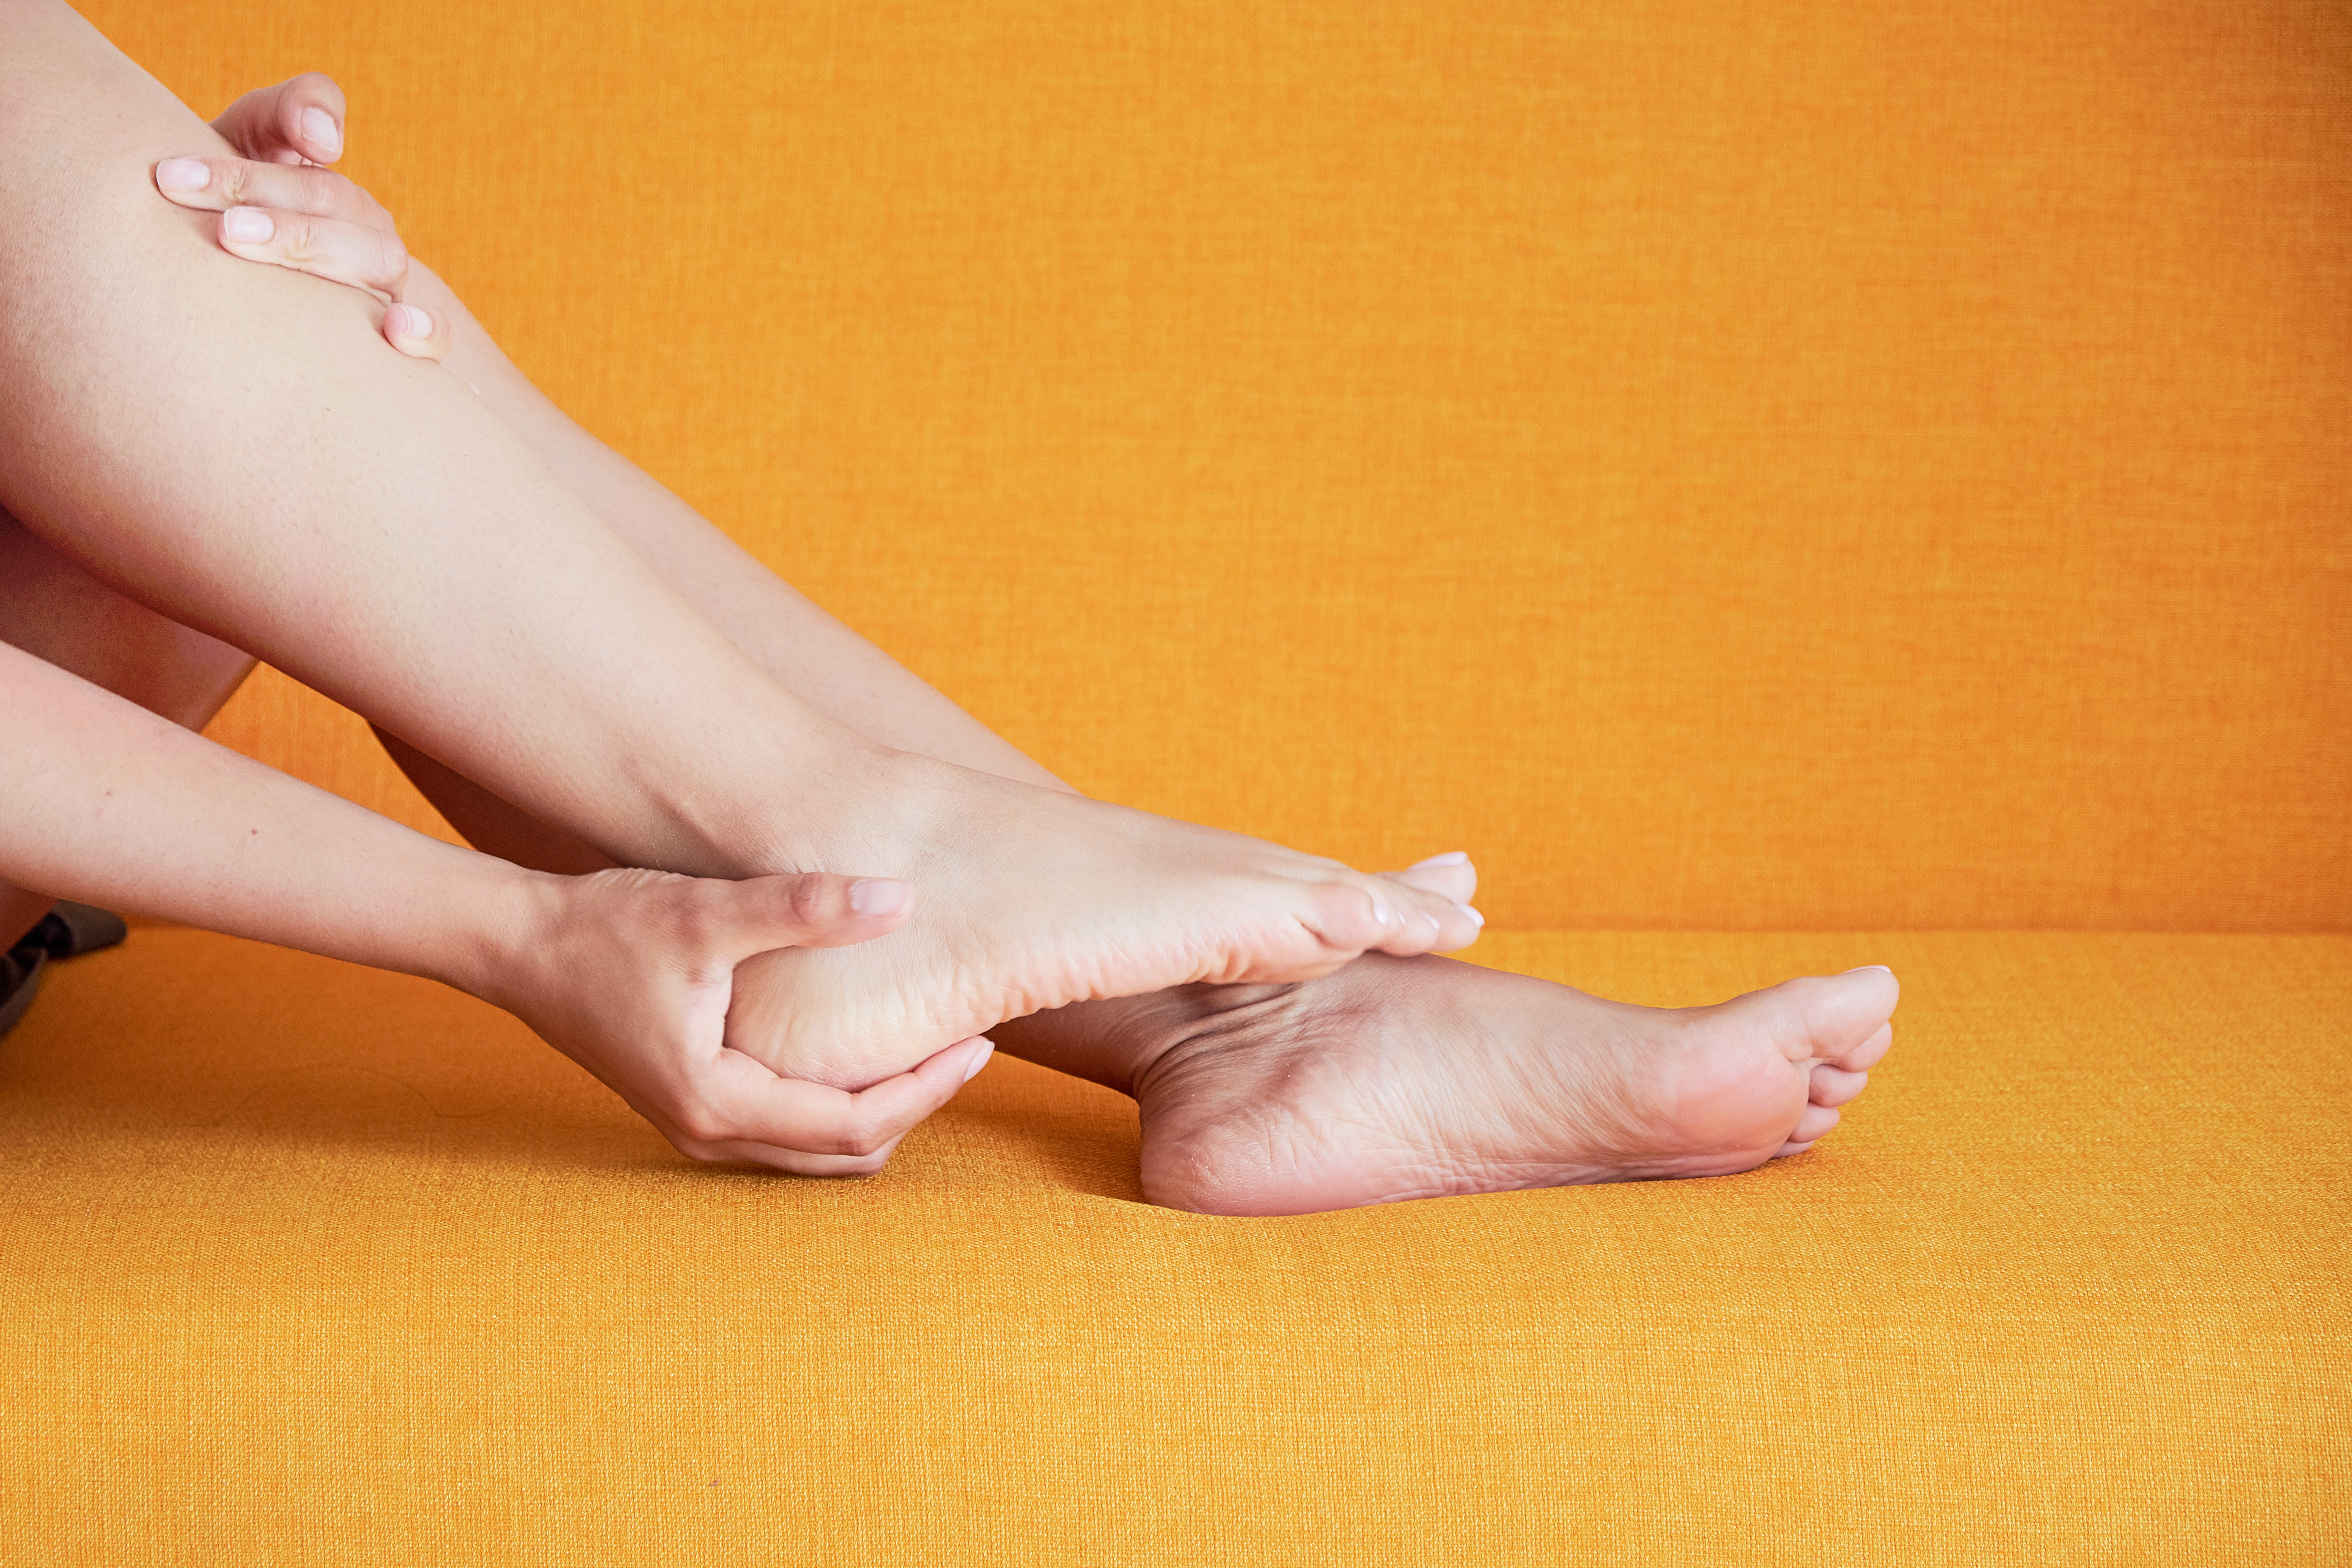 Bilateral Ankle Edema: Causes when Tests Are Normal